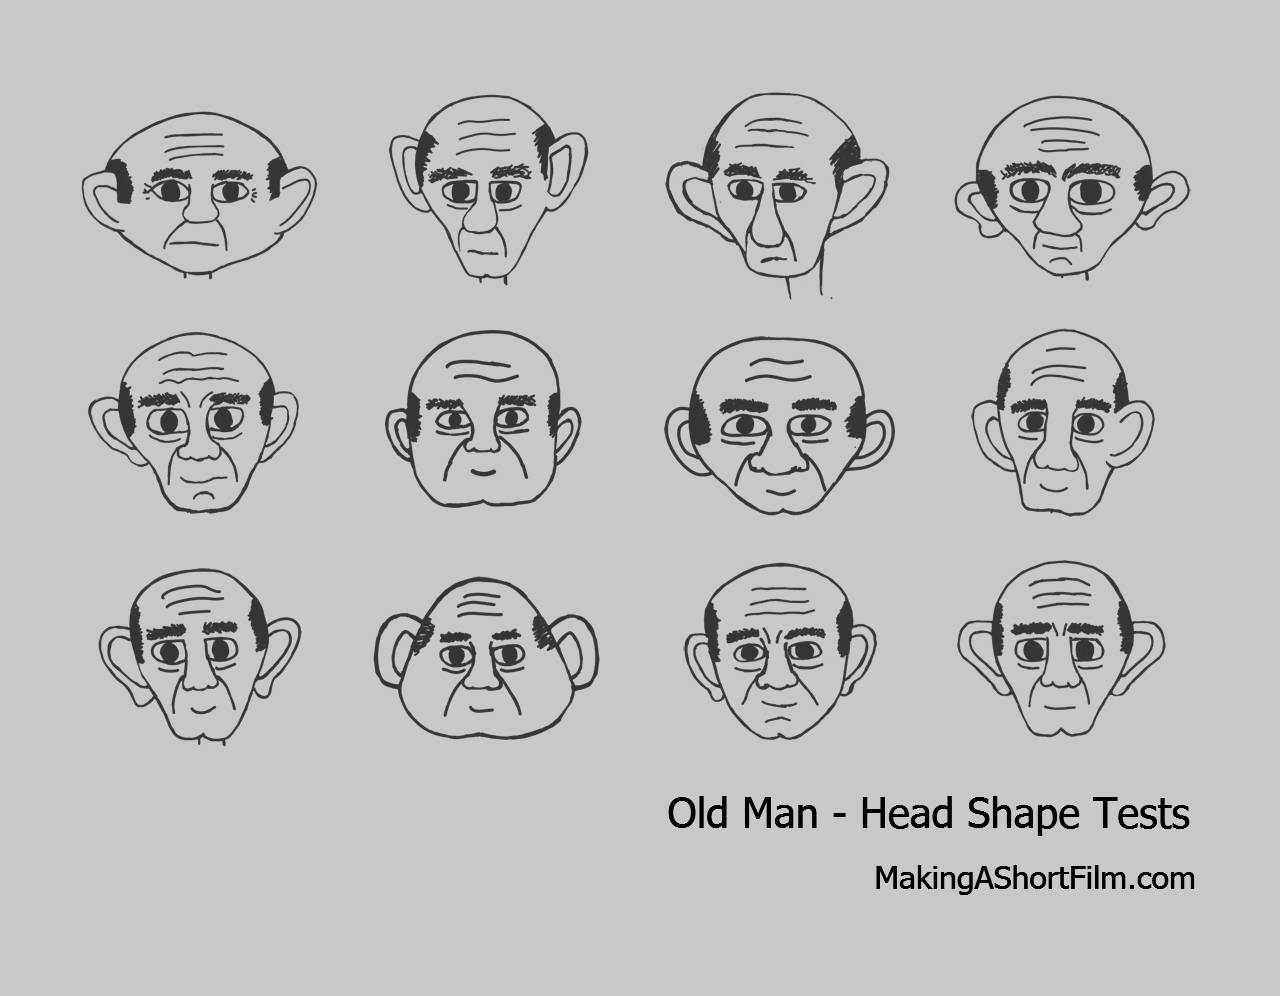 The Old Man's General Shape